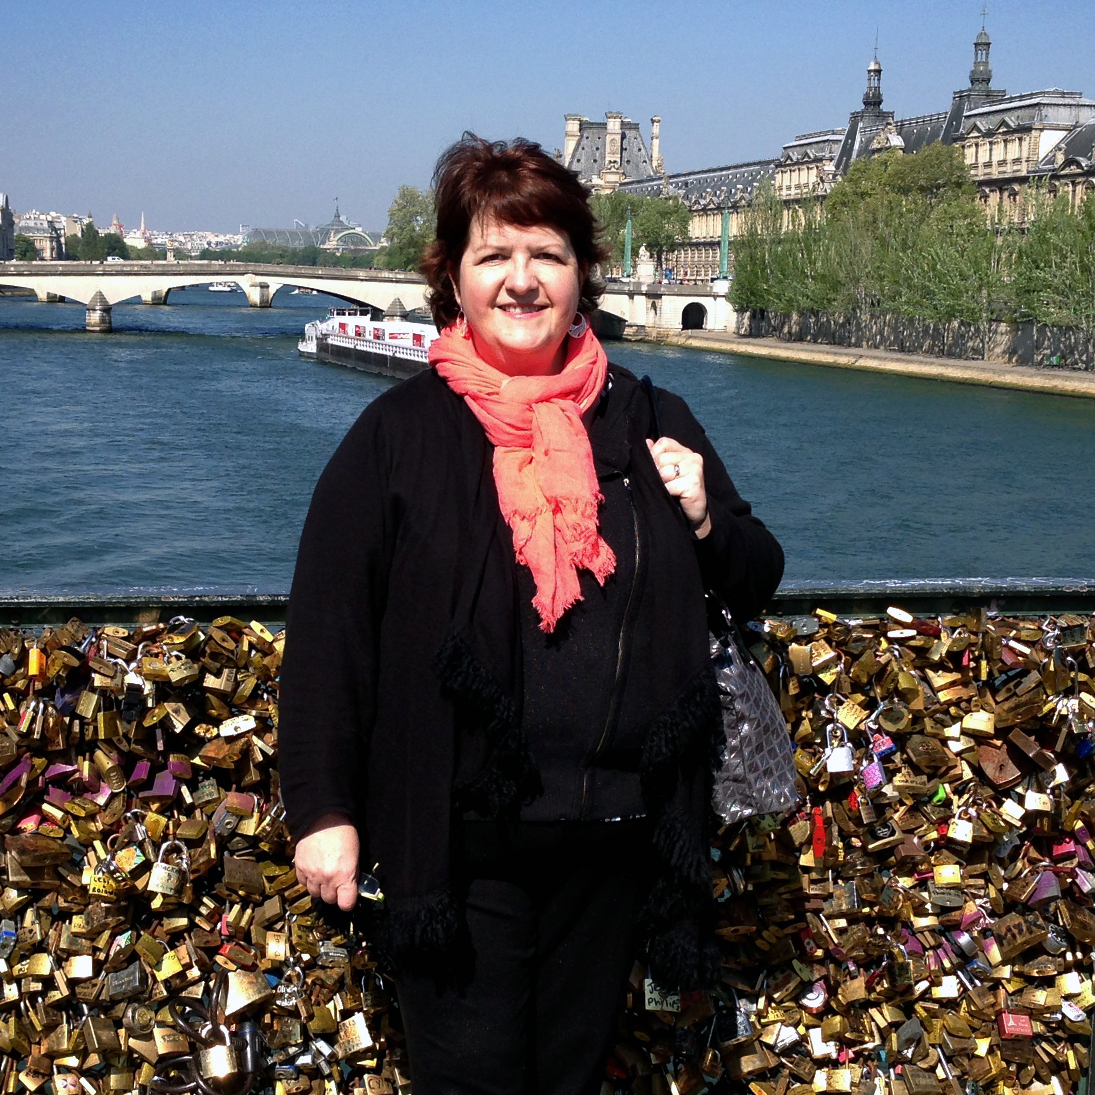 Two months ago, Lisa Taylor Huff launched an online campaign to get rid of the locks. The American with dual U.S.-French citizenship now calls Paris home.